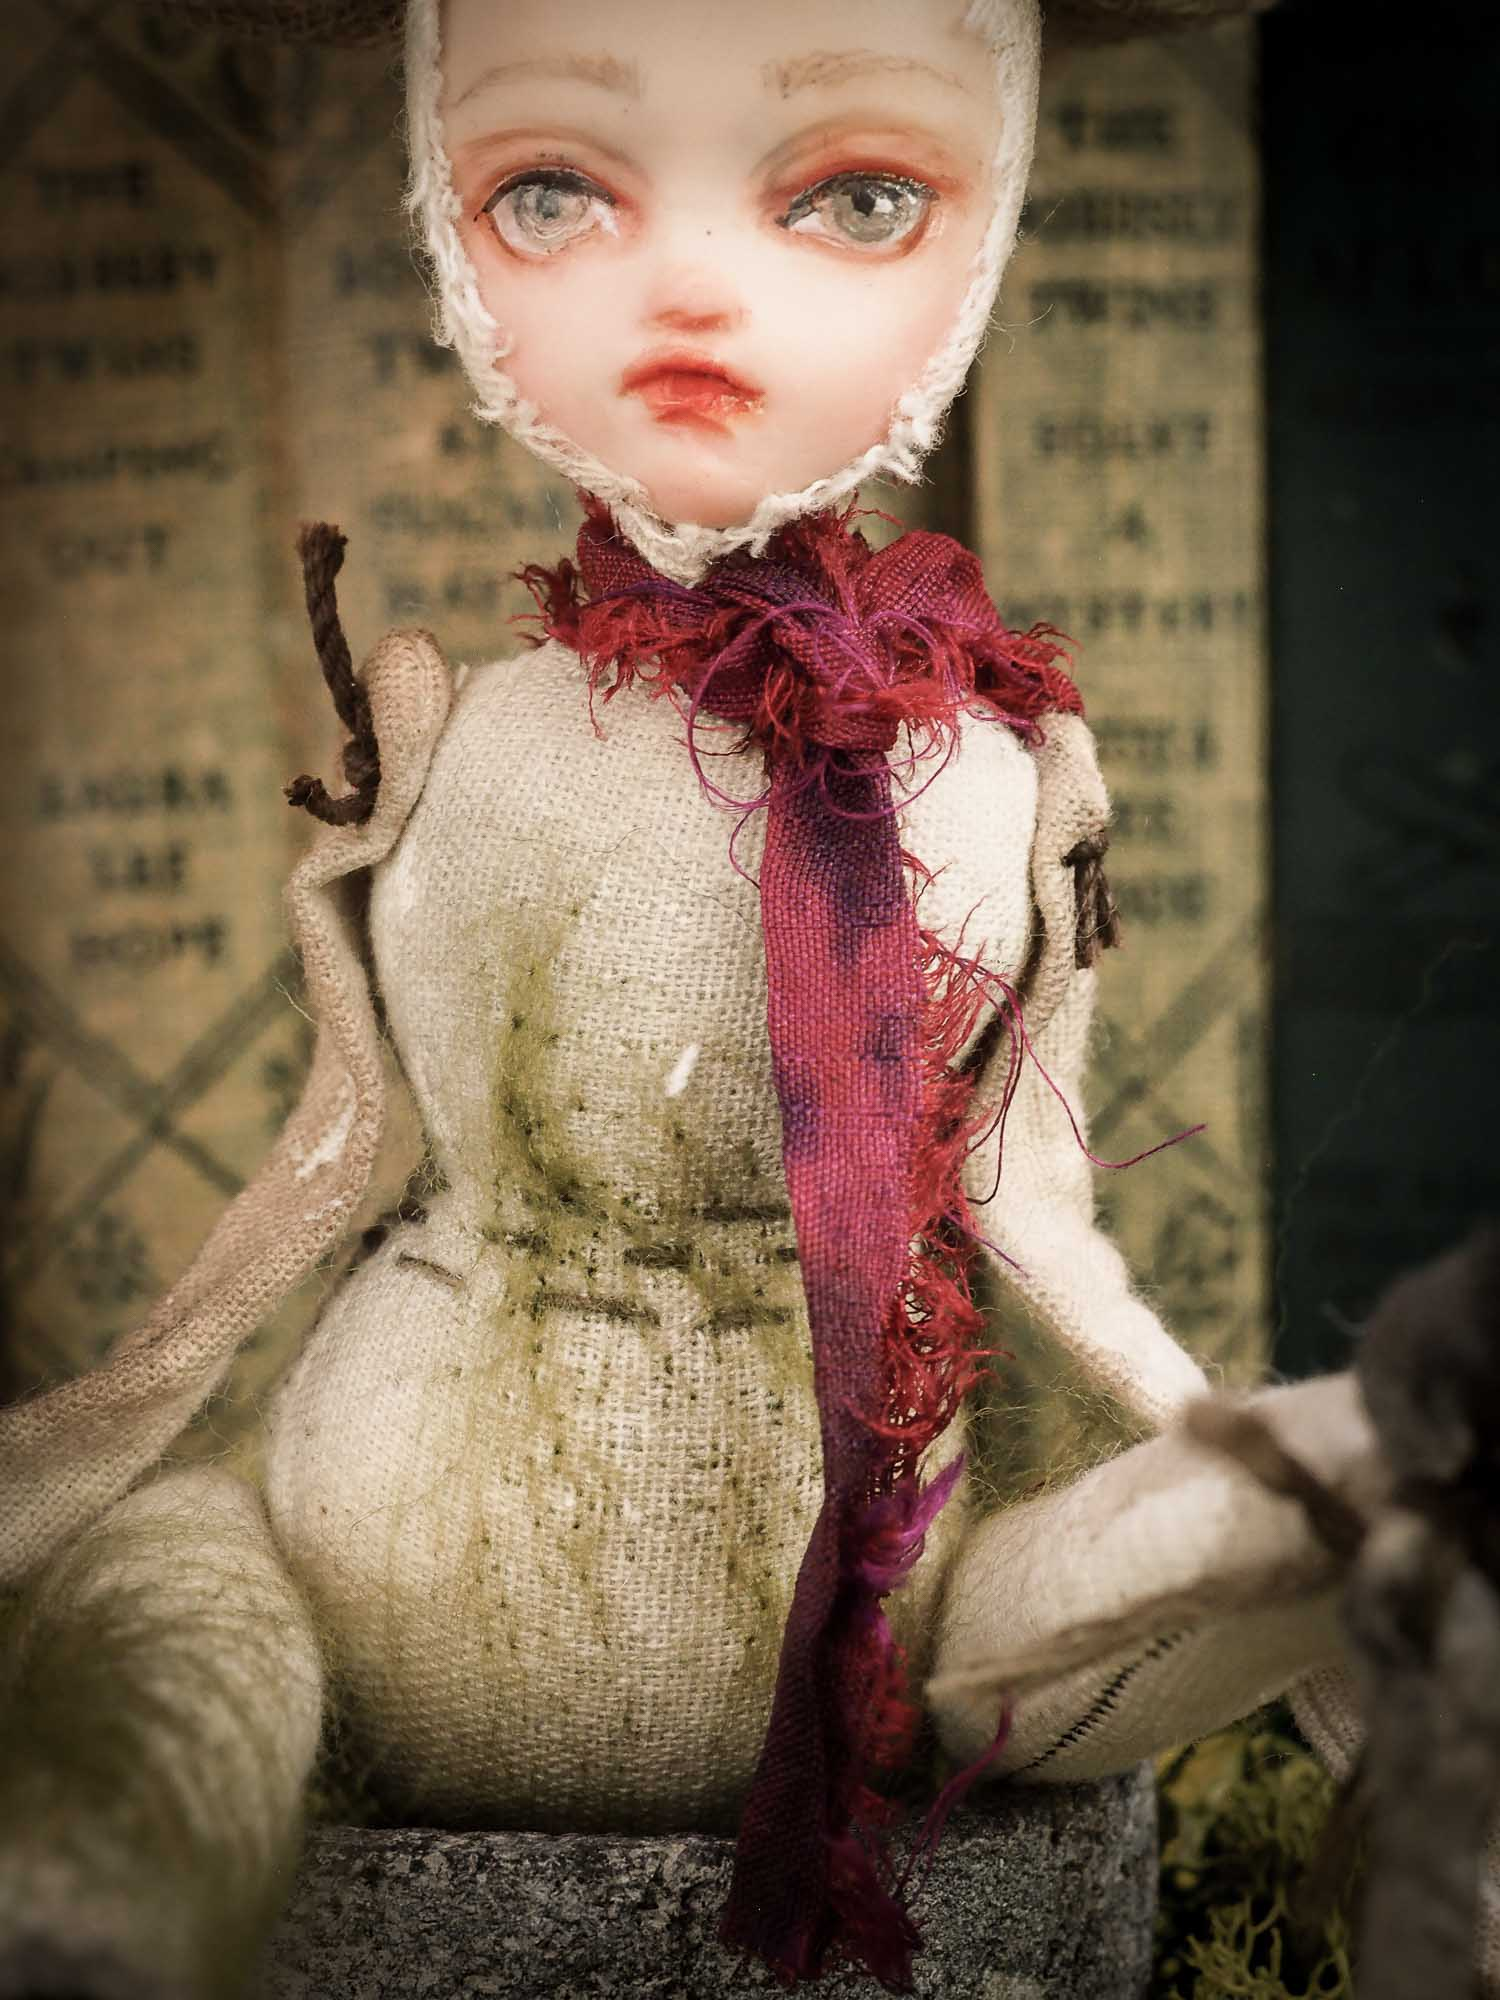 An original handmade art doll by Danita Art, made with original patterns, organic fabric dyed using only natural ingredients like avocado peels, walnuts and marigolds. Each mini art doll in this toy collection is a mini work of huggable fabric art that will be treasured by any collector of Danita's melancholic and fantastic work.